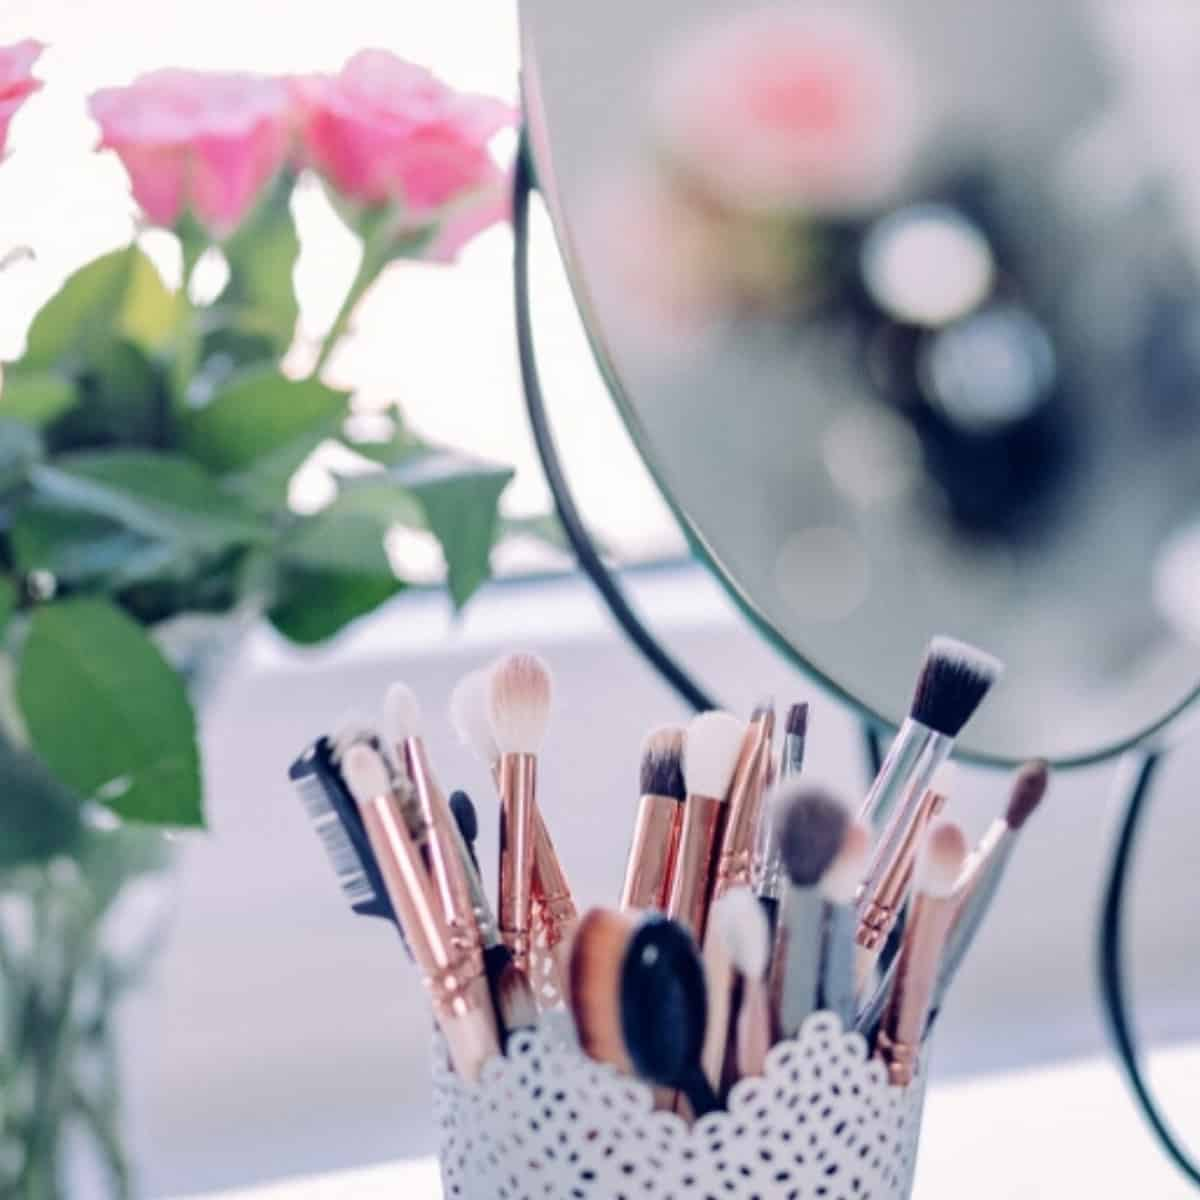 self care vanity table with makeup brushes and pink roses